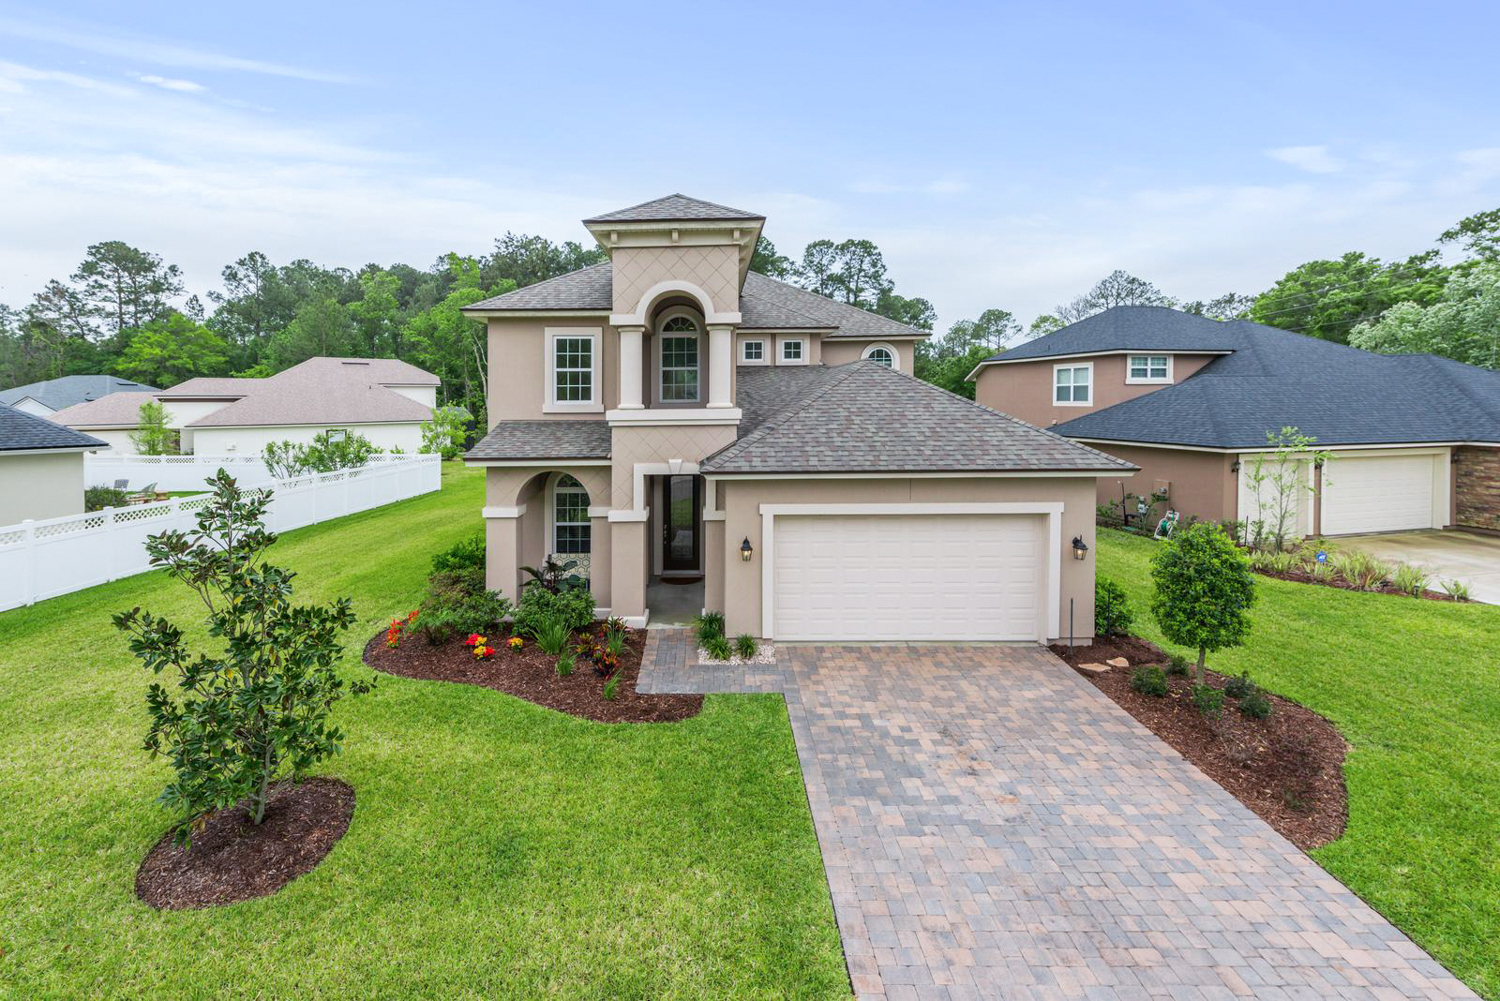 level_exposure_real_estate_photography_jacksonville_florida_32257-22